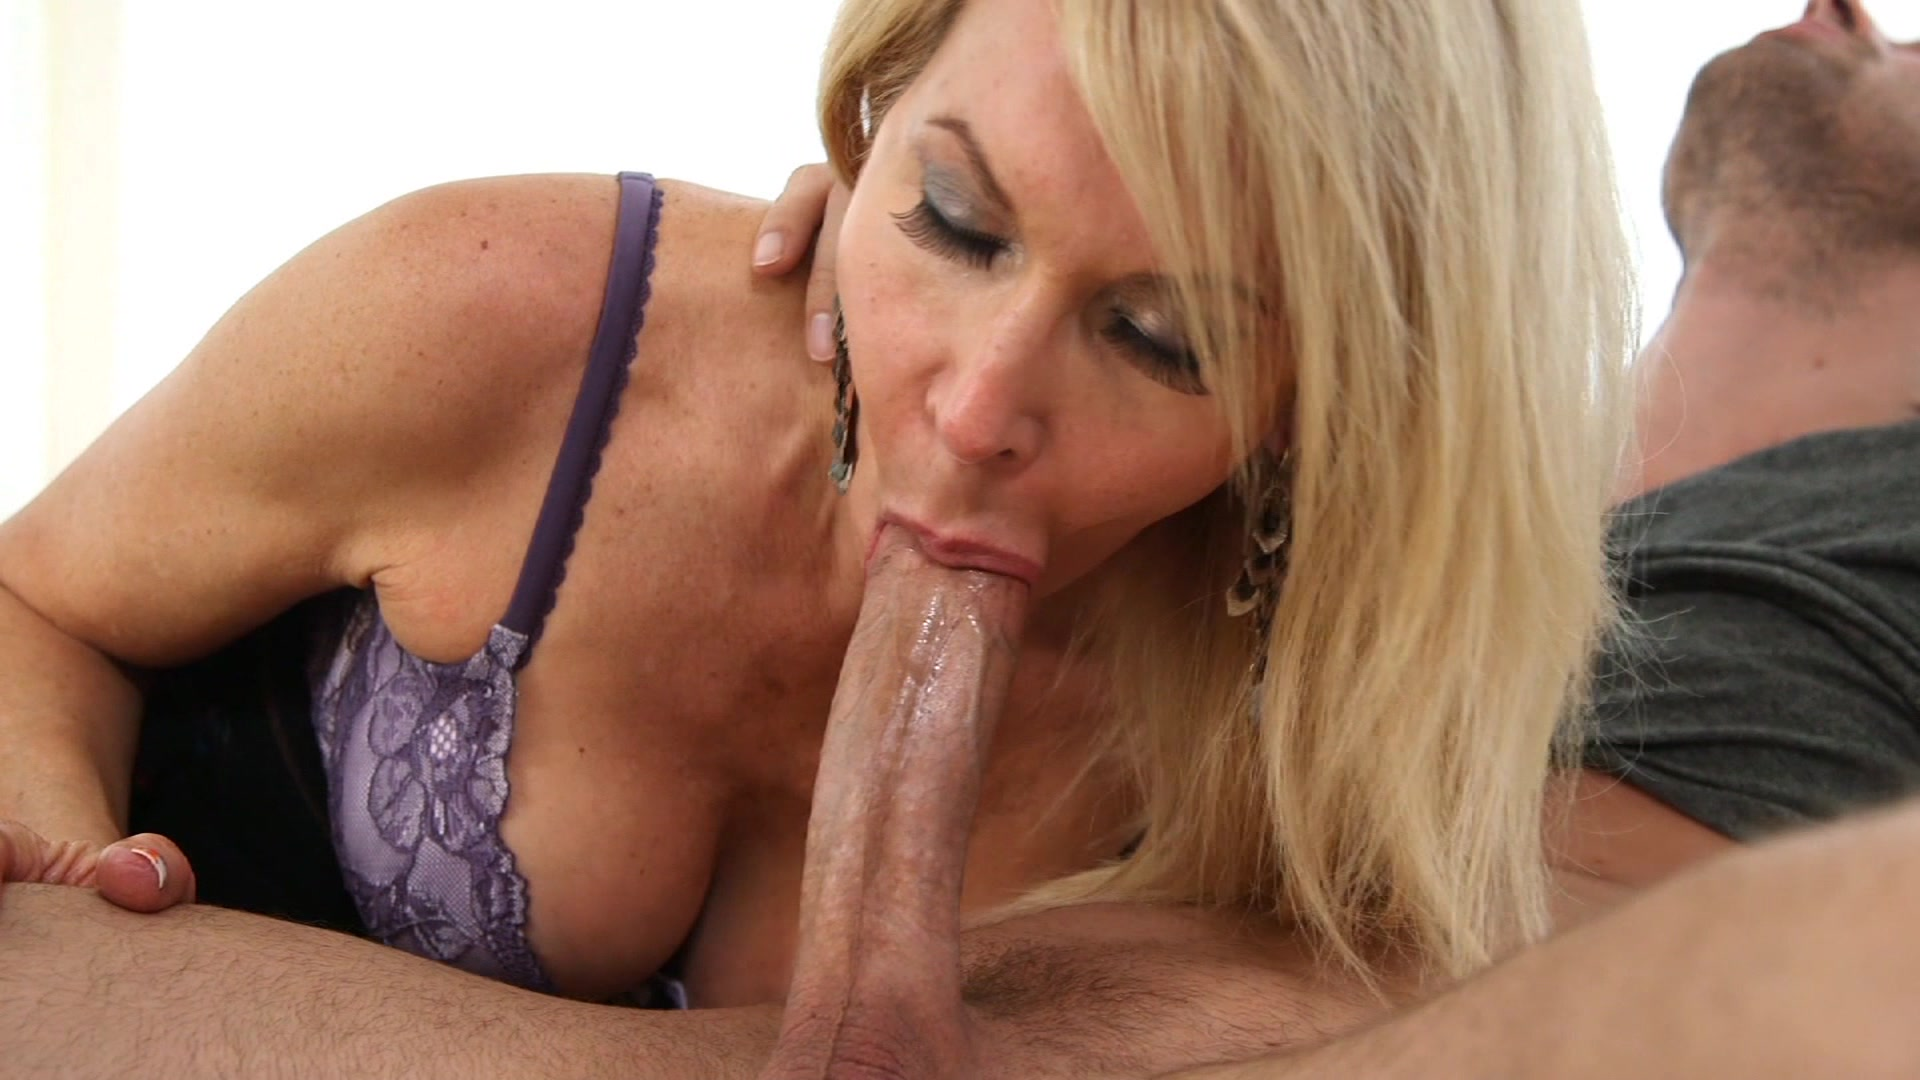 Kianna bradley strokes and licks a cock until she gets cum - 1 part 5